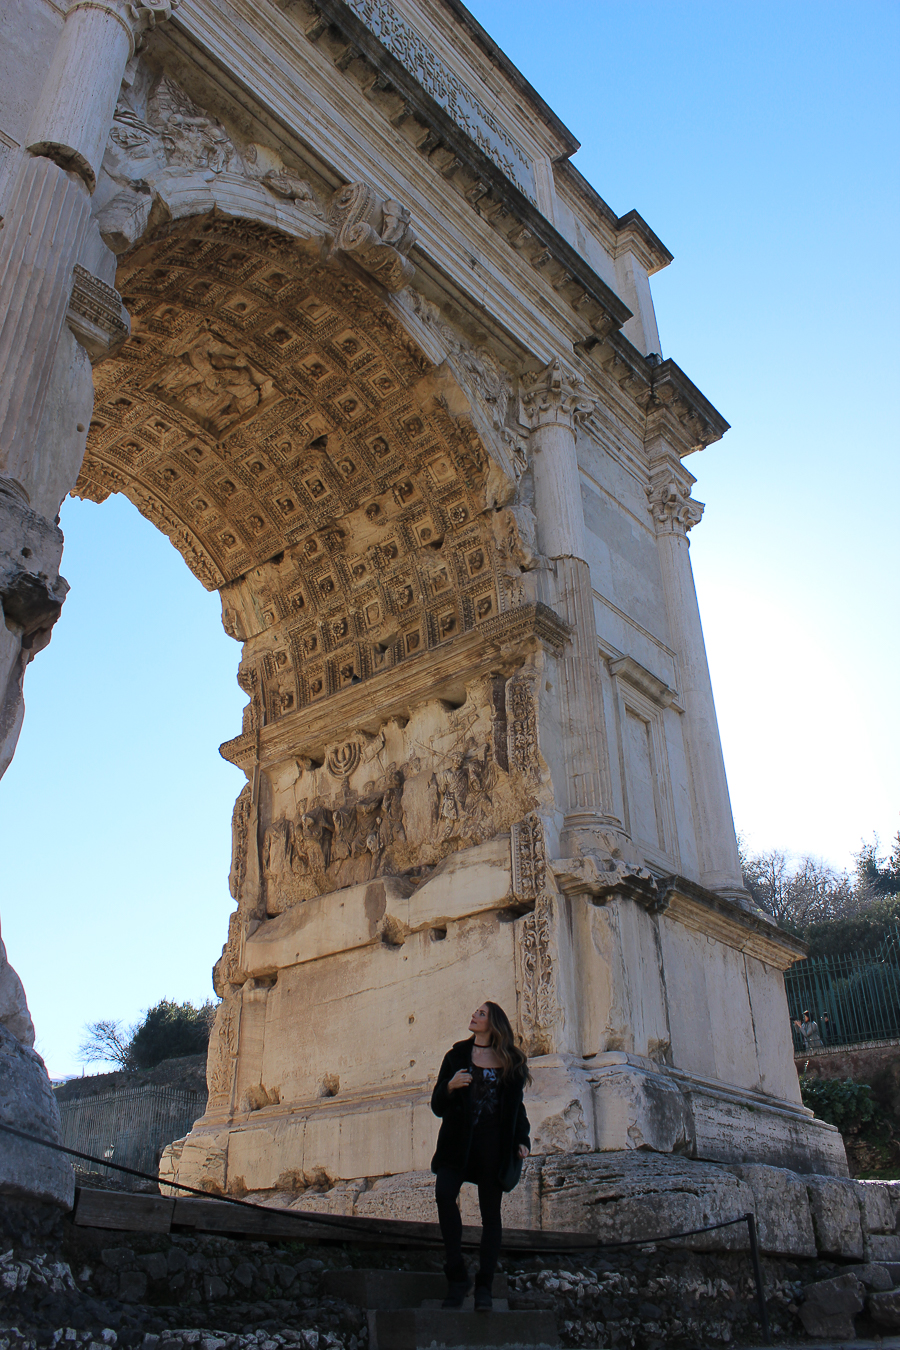 Sabrina Chakici - Clutch & Carry-On - UK Travel Blogger - Rome Travel Blog - Italy, Roman Candle Tours (97 of 150)